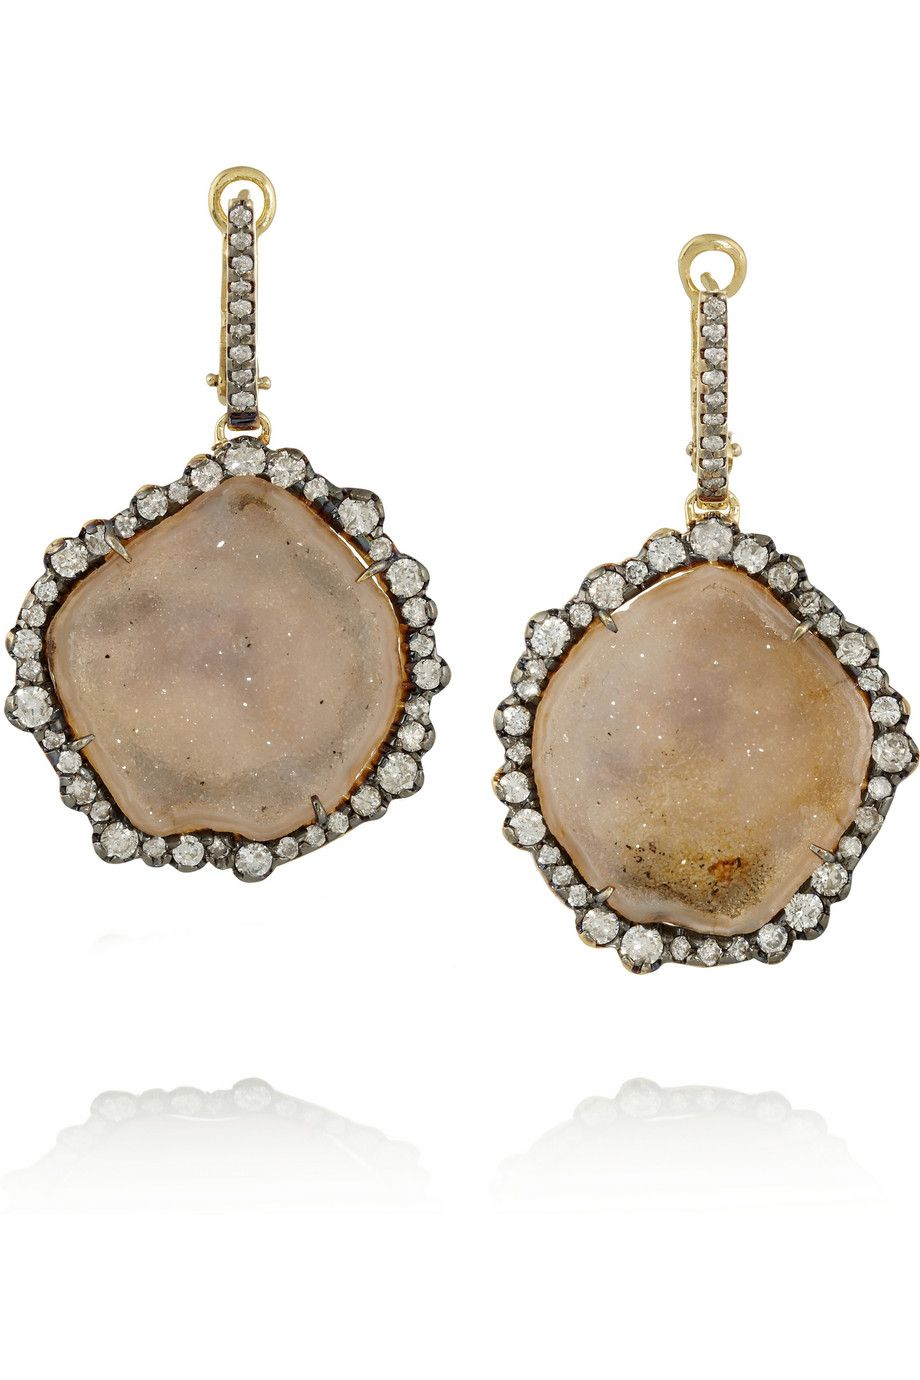 18-karat Gold, Diamond And Geode Earrings - one size Kimberly McDonald